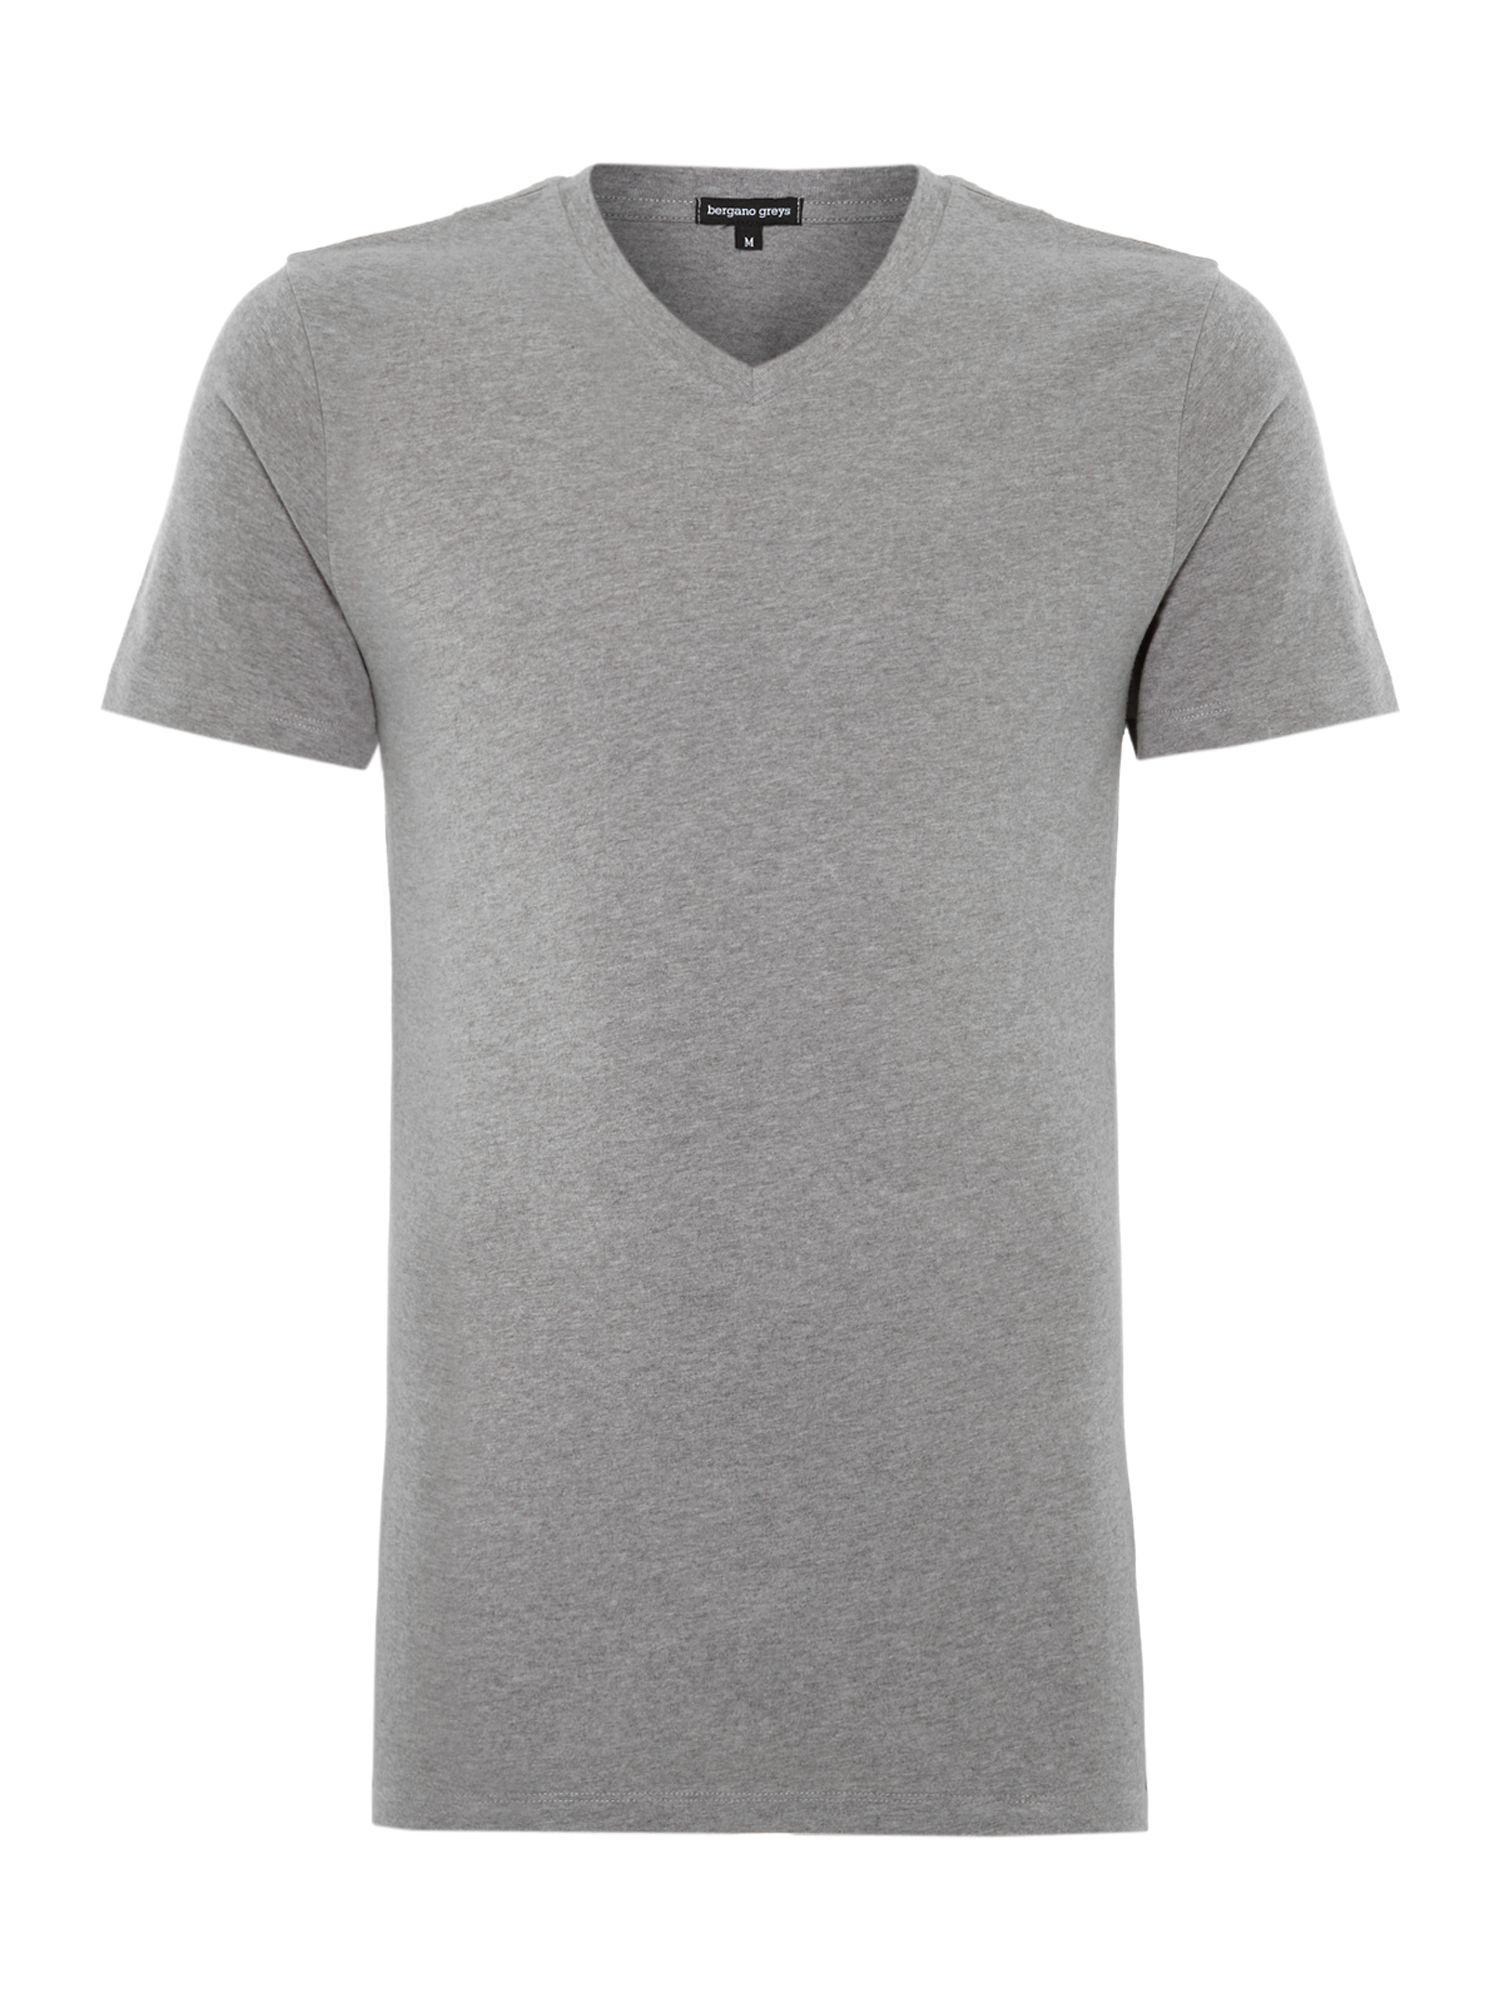 Relaxed fit cotton v neck